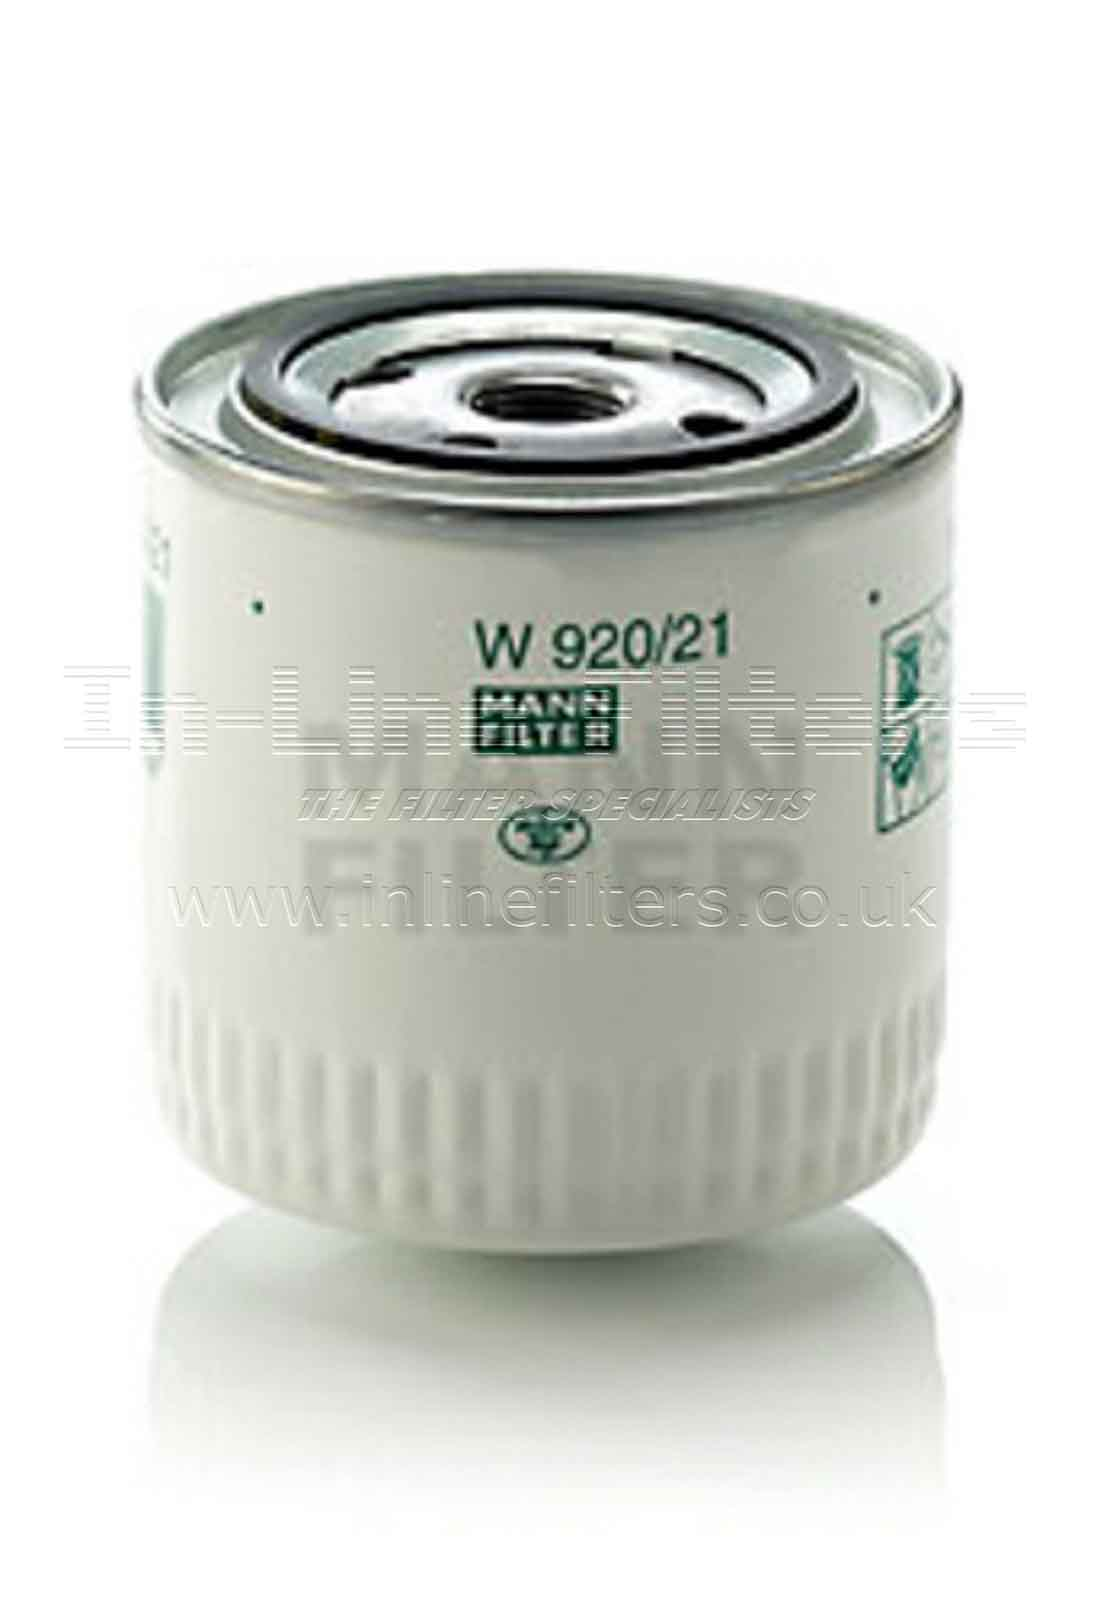 FMH-W920-21 FILTER-Lube(Brand Specific-Mann W920/21) - Click Image to Close